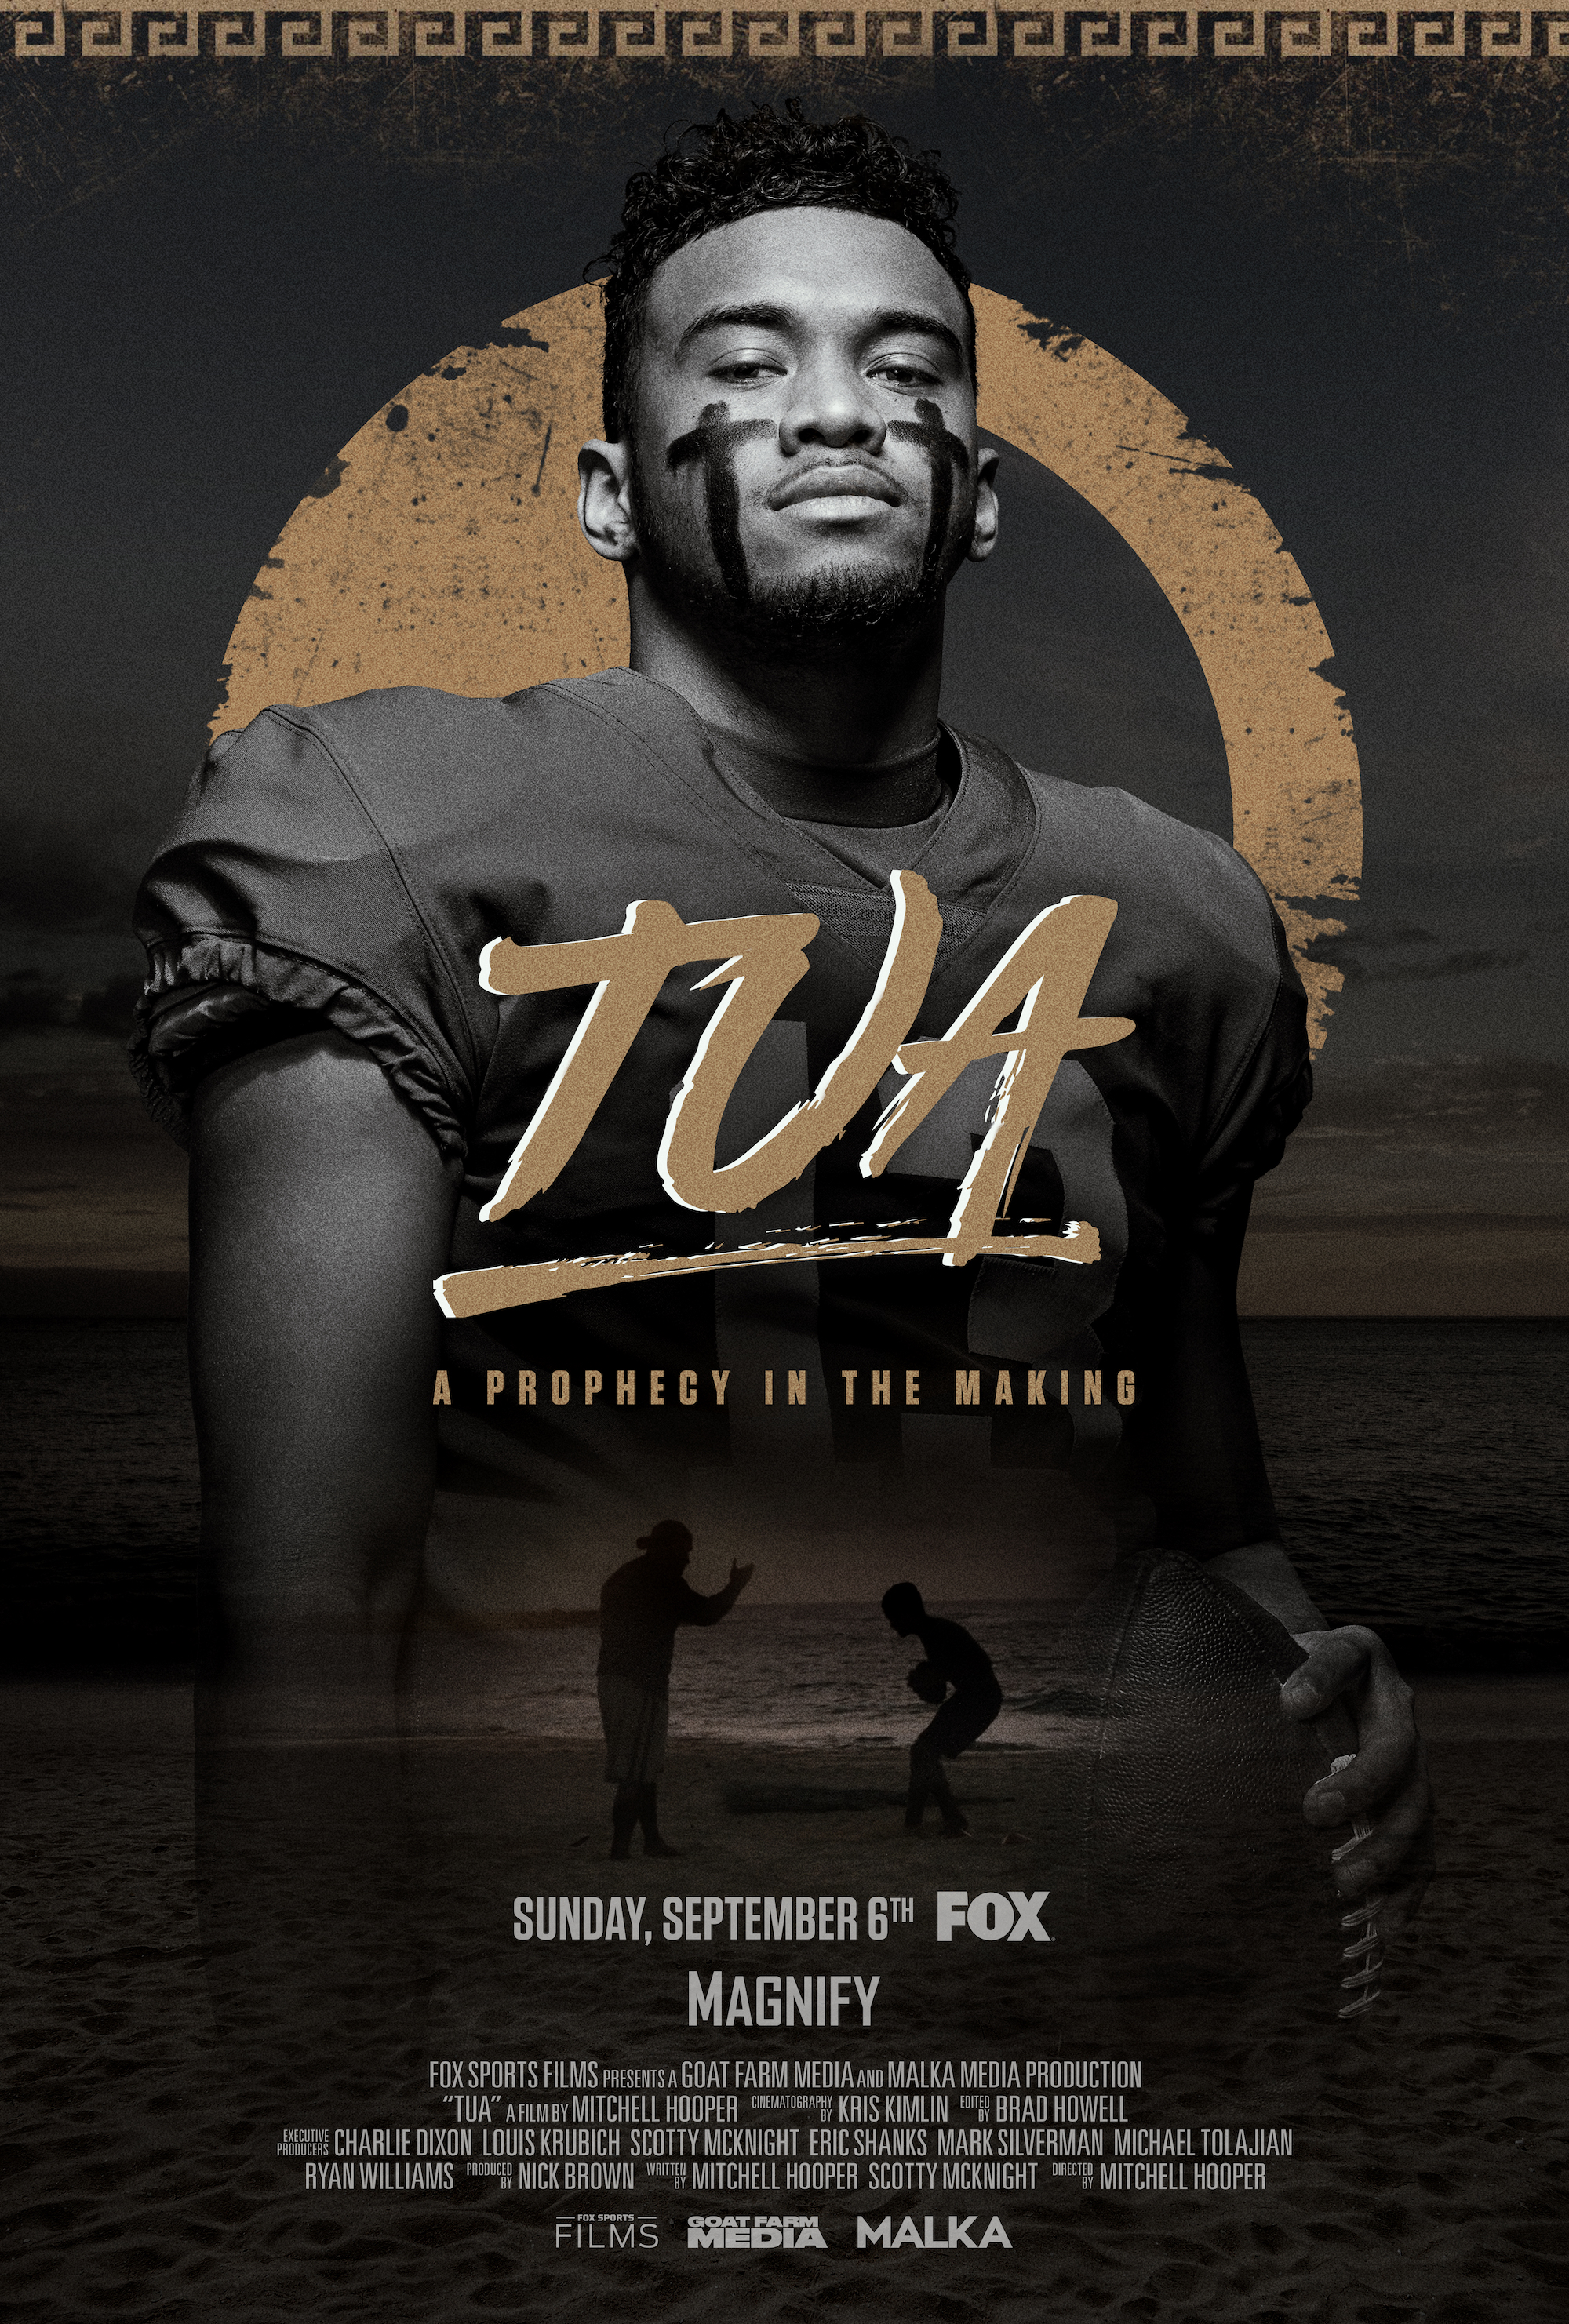 TUA FOX Sports doc compressed poster with date